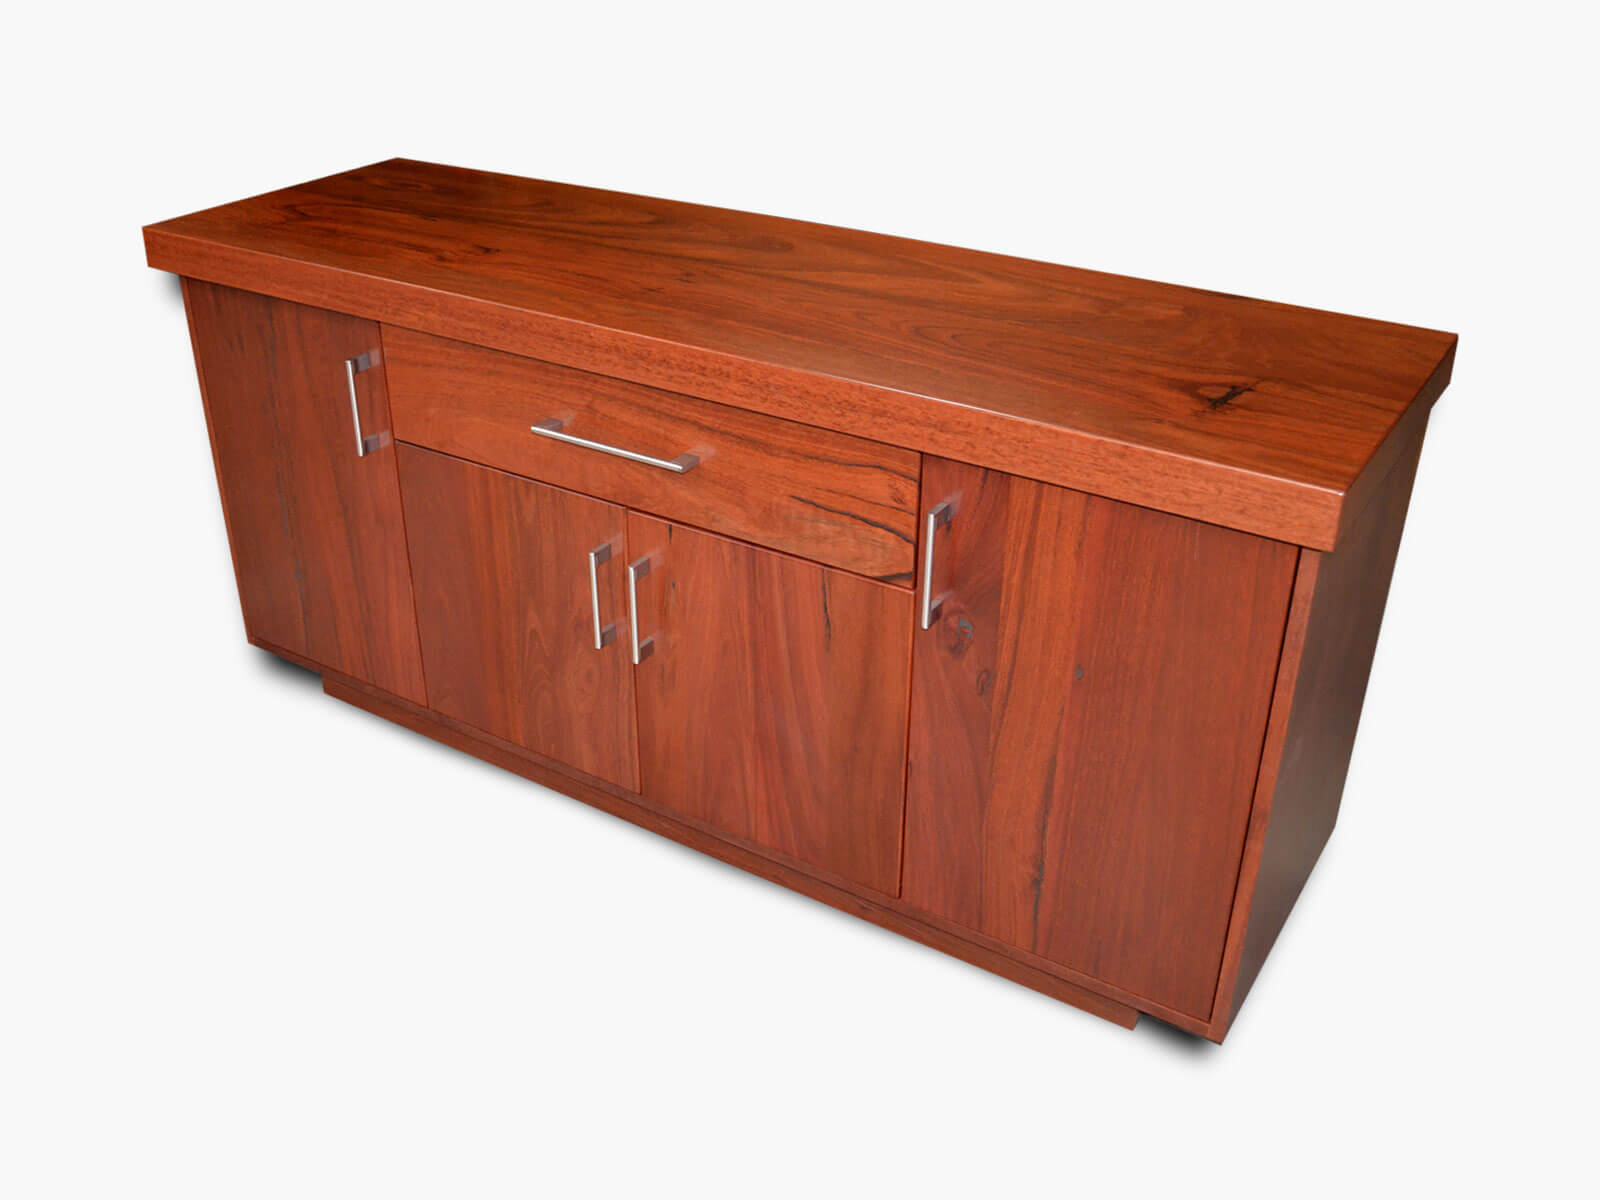 Dampier-Buffet Timber Furniture